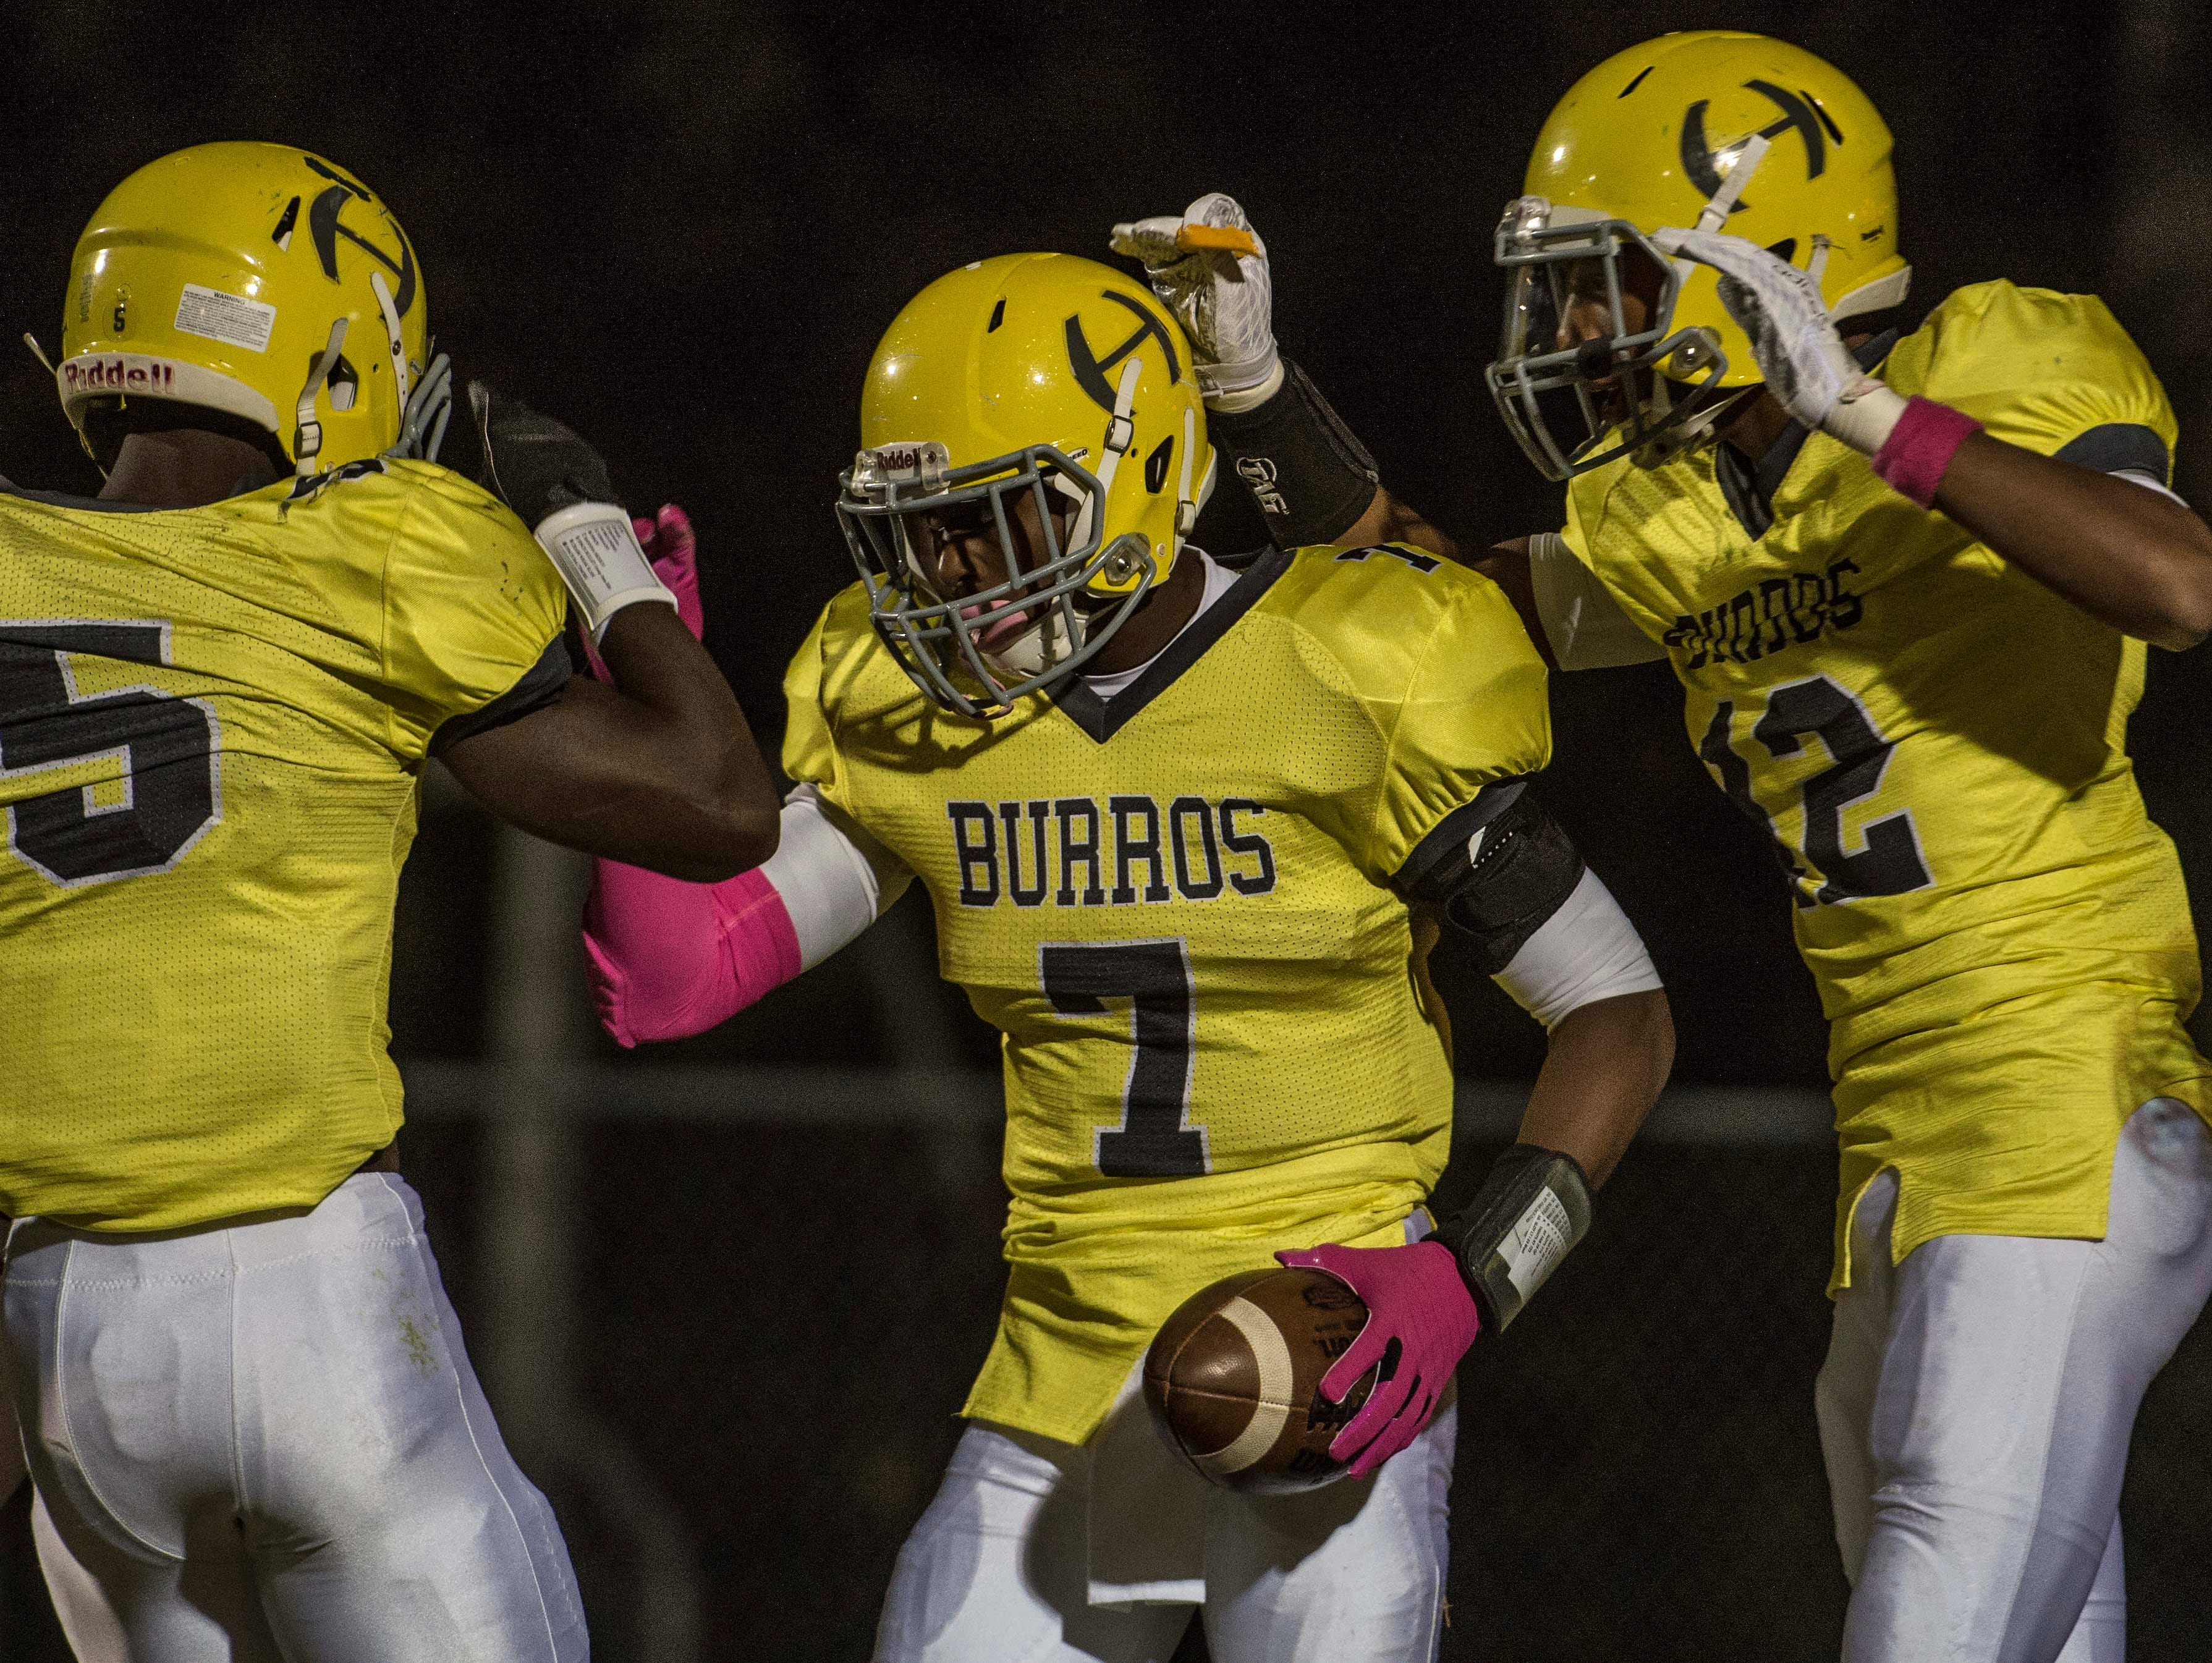 Hillsboro's Jeremy Hill is congratulated after scoring a touchdown against Hunters Lane.